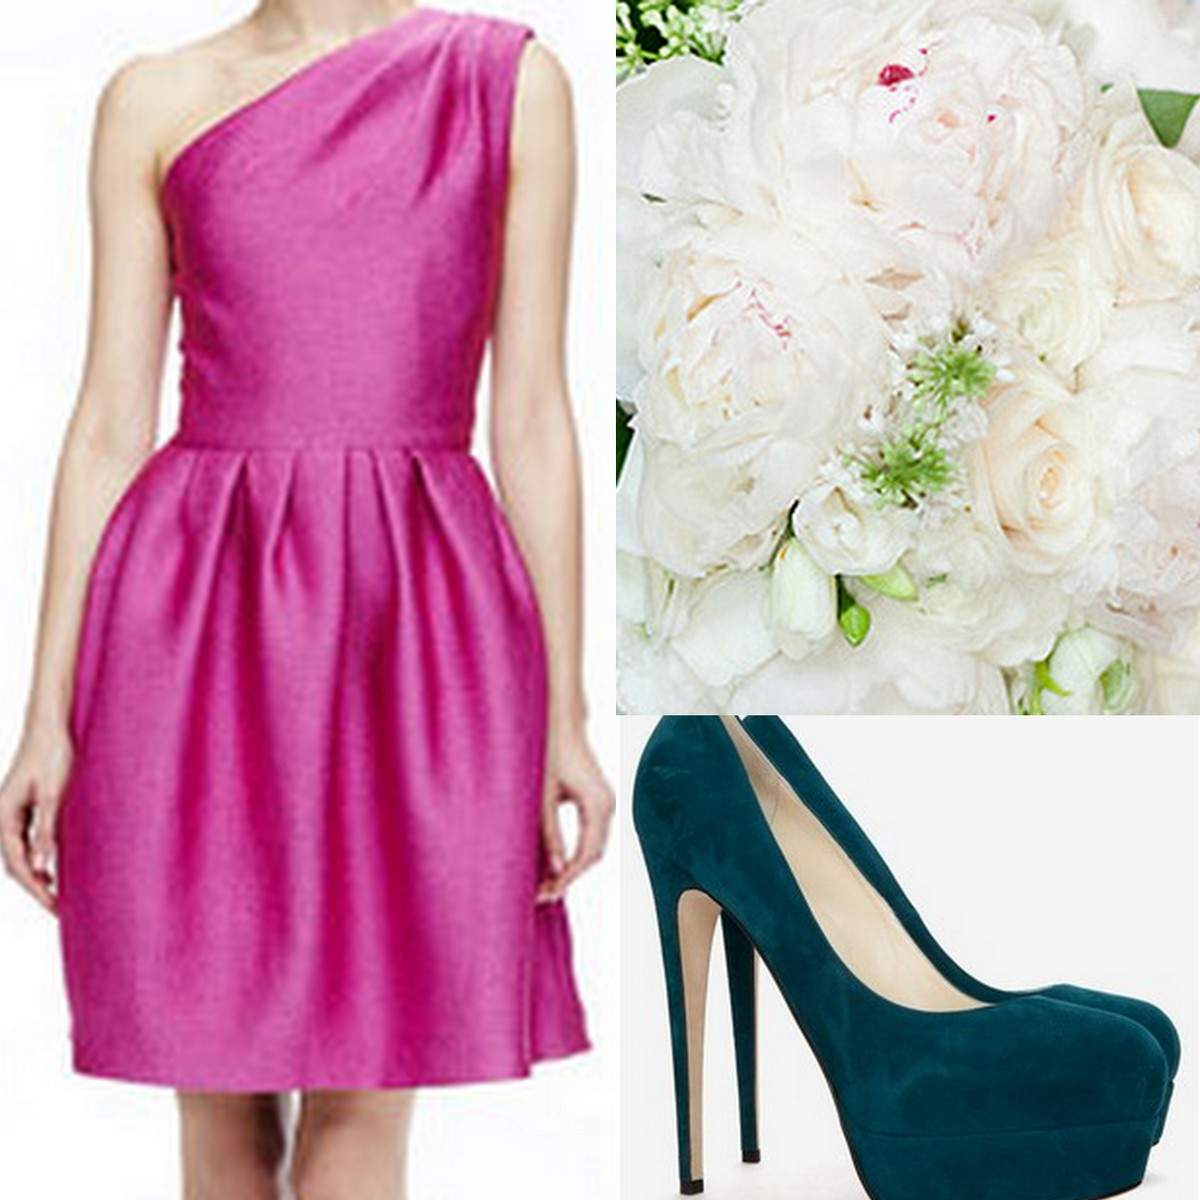 Pink Bridesmaid Dress Inspiration, Style, Inspiration, J.Crew, Jimmy Choo